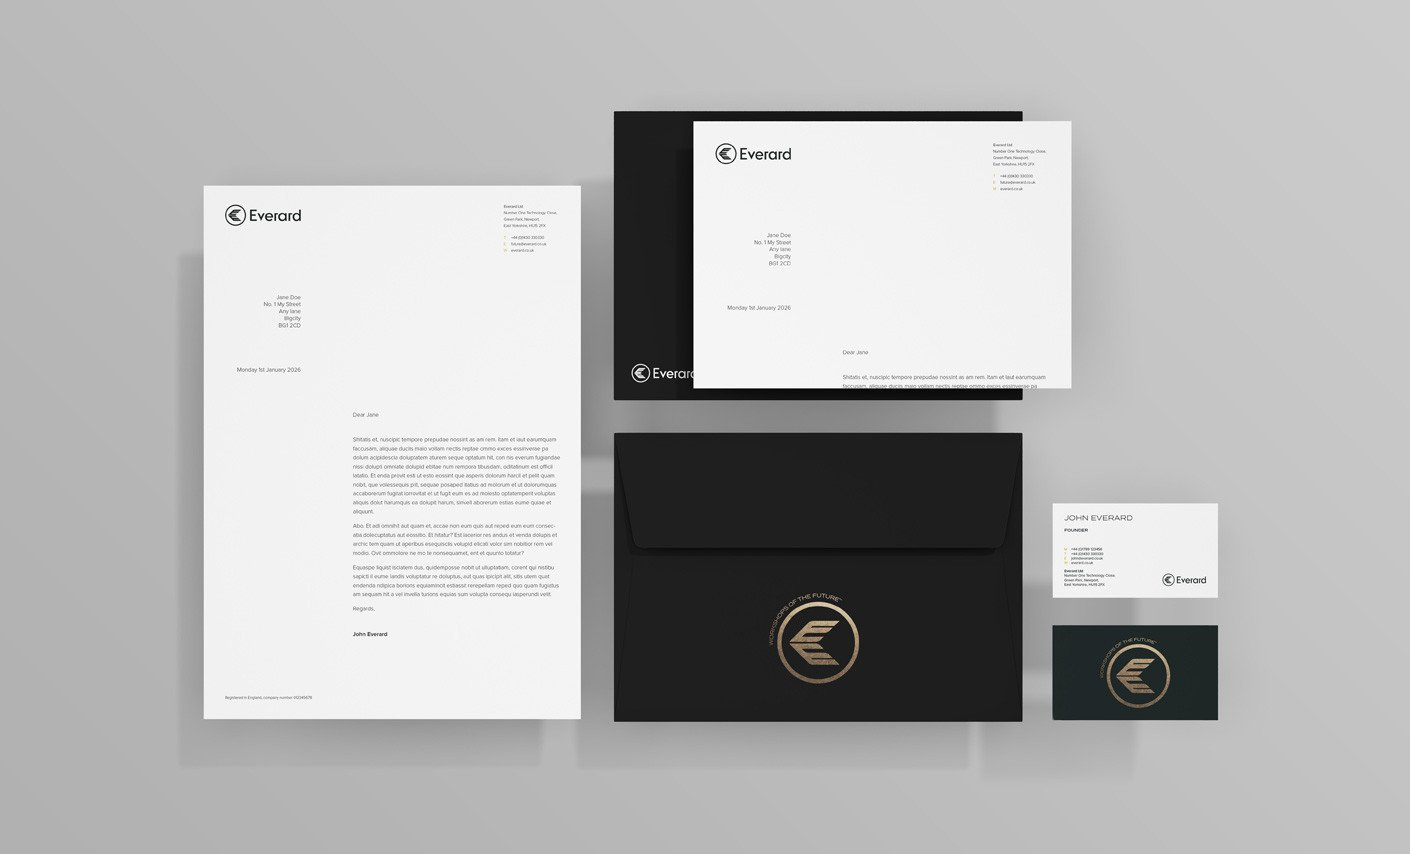 Everard stationery